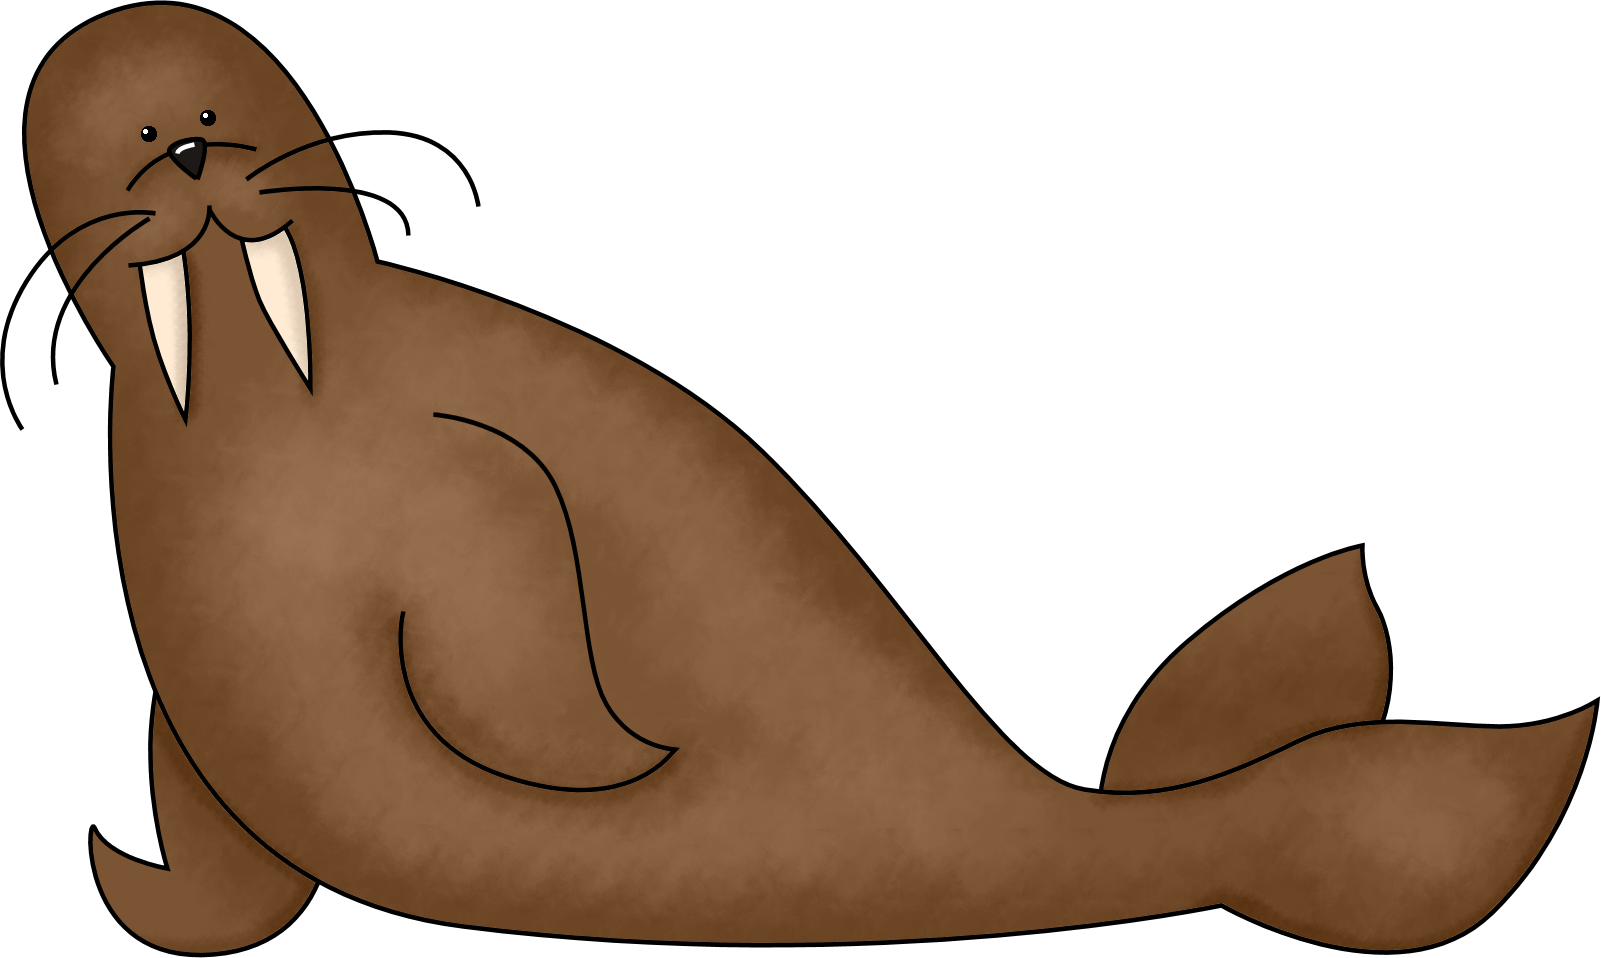 Brown Walrus Drawn Images image #48627